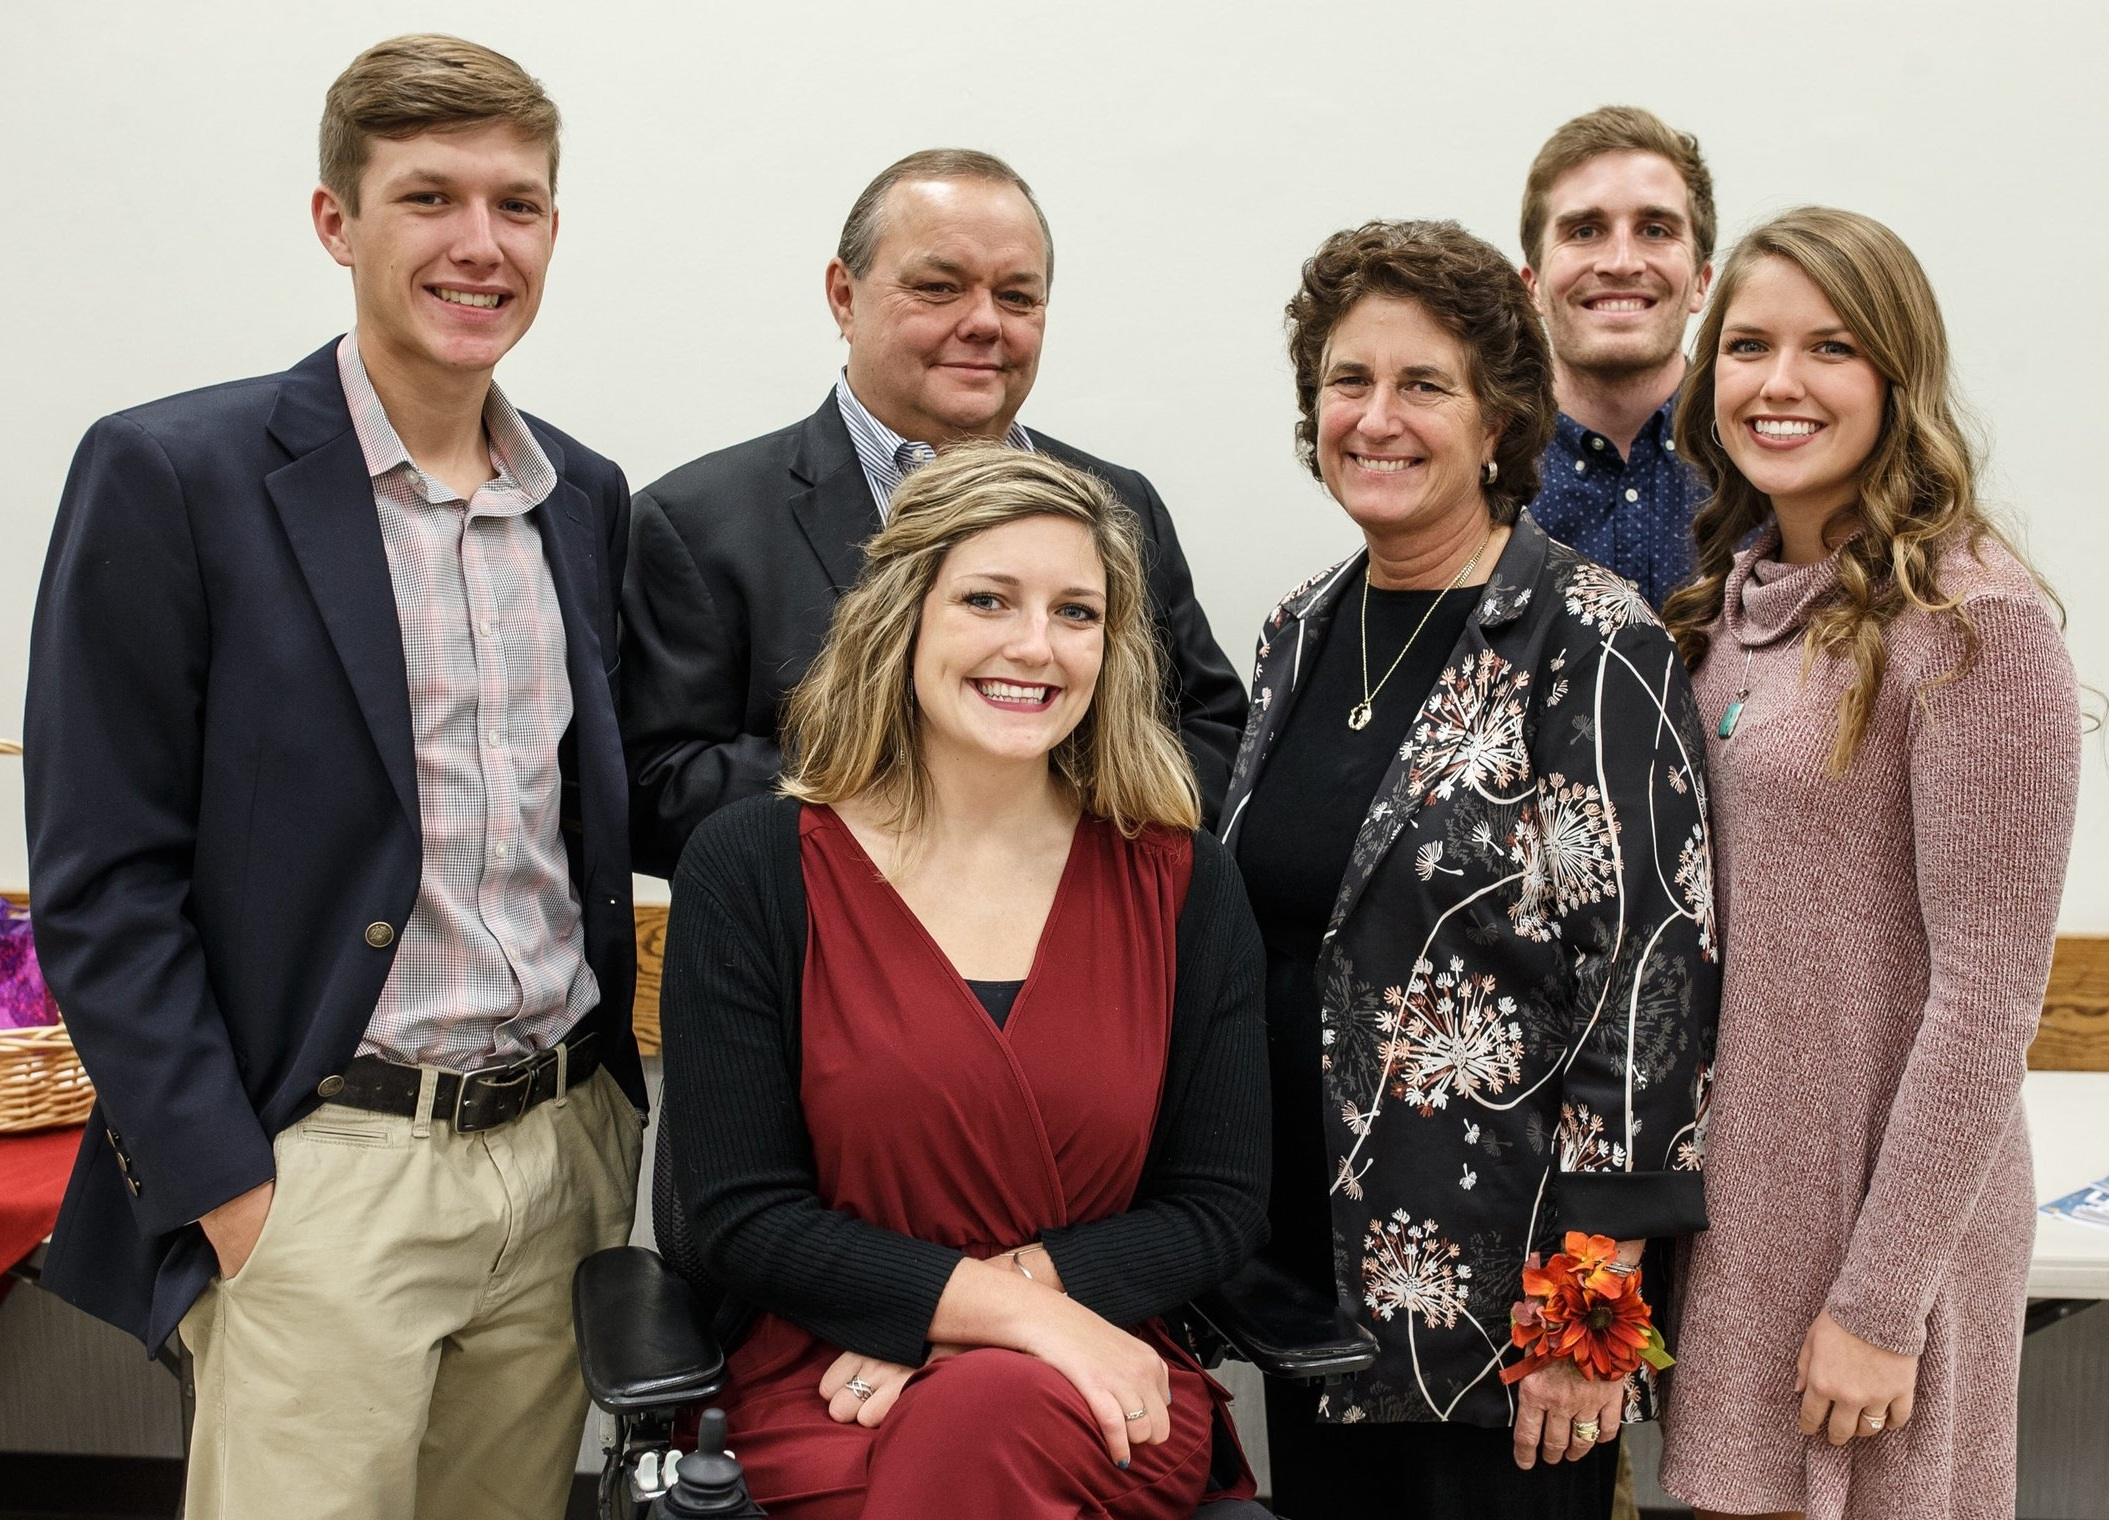 Grace with her family celebrating her mother's The Republic's Woman of the Year award in 2018.